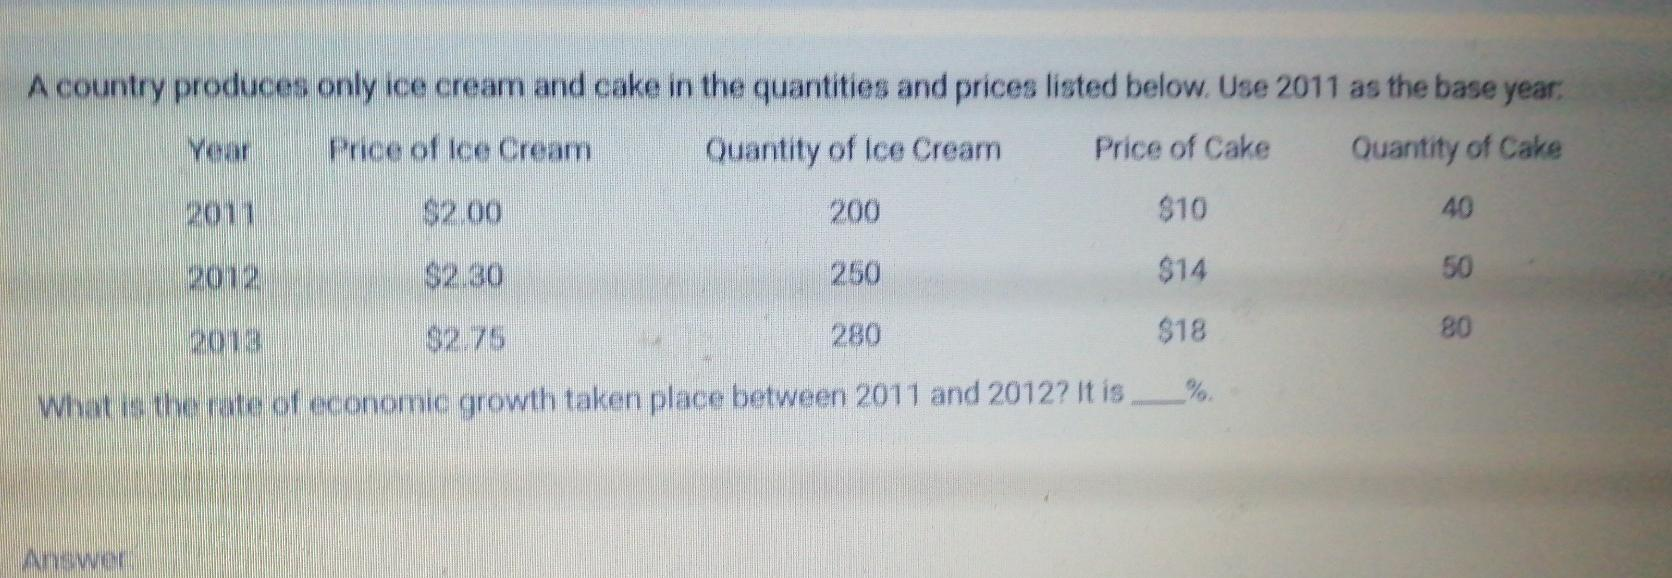 A country produces only ice cream and cake in the quantities and prices listed below. Use 2011 as the base year: Your Price o